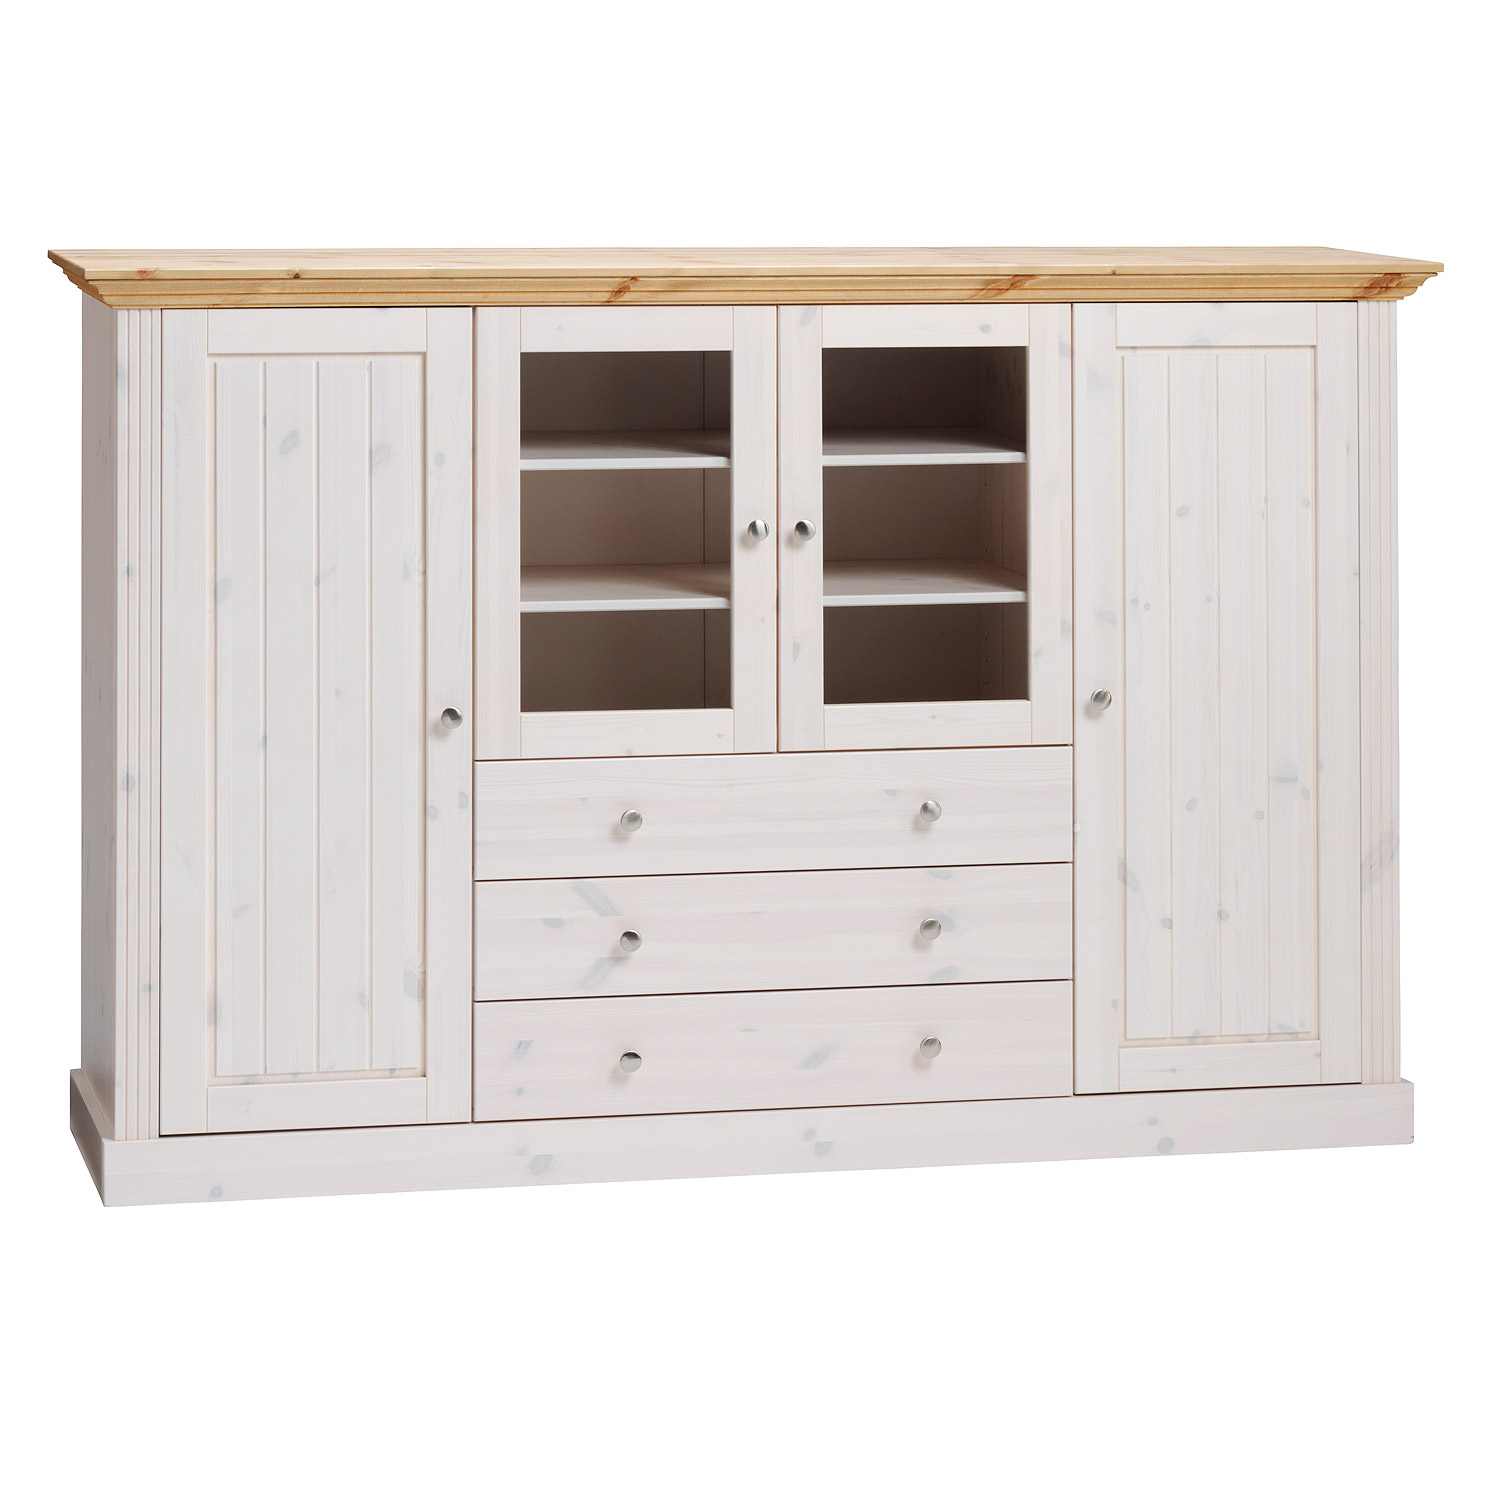 highboard monaco vitrine kiefer massiv wei white wash und gelaugt ebay. Black Bedroom Furniture Sets. Home Design Ideas